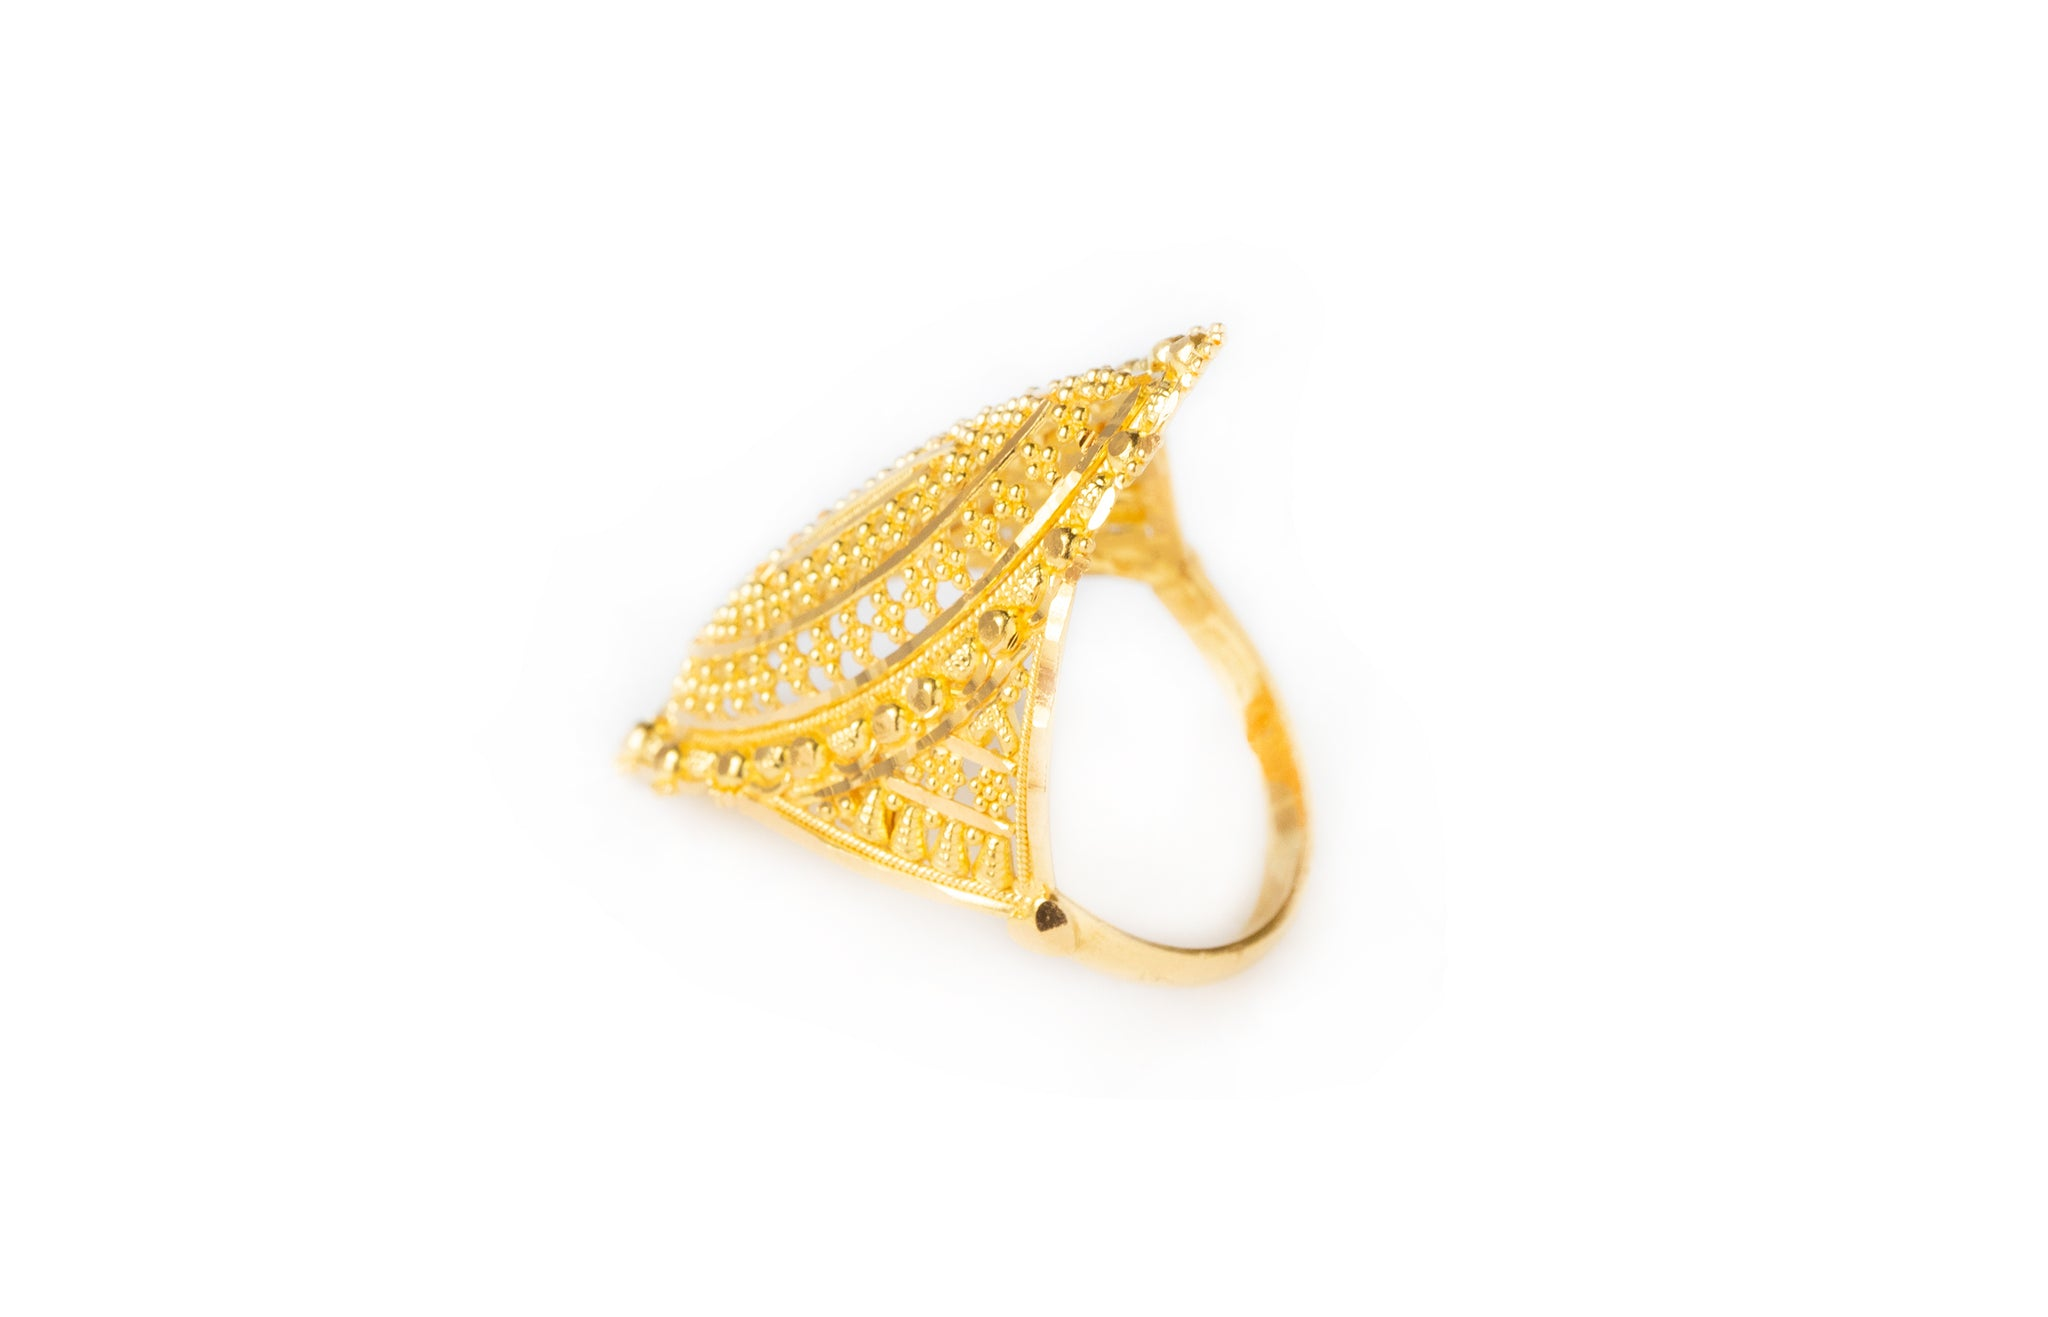 22ct Gold Filigree Dress Ring (6g) LR-7804